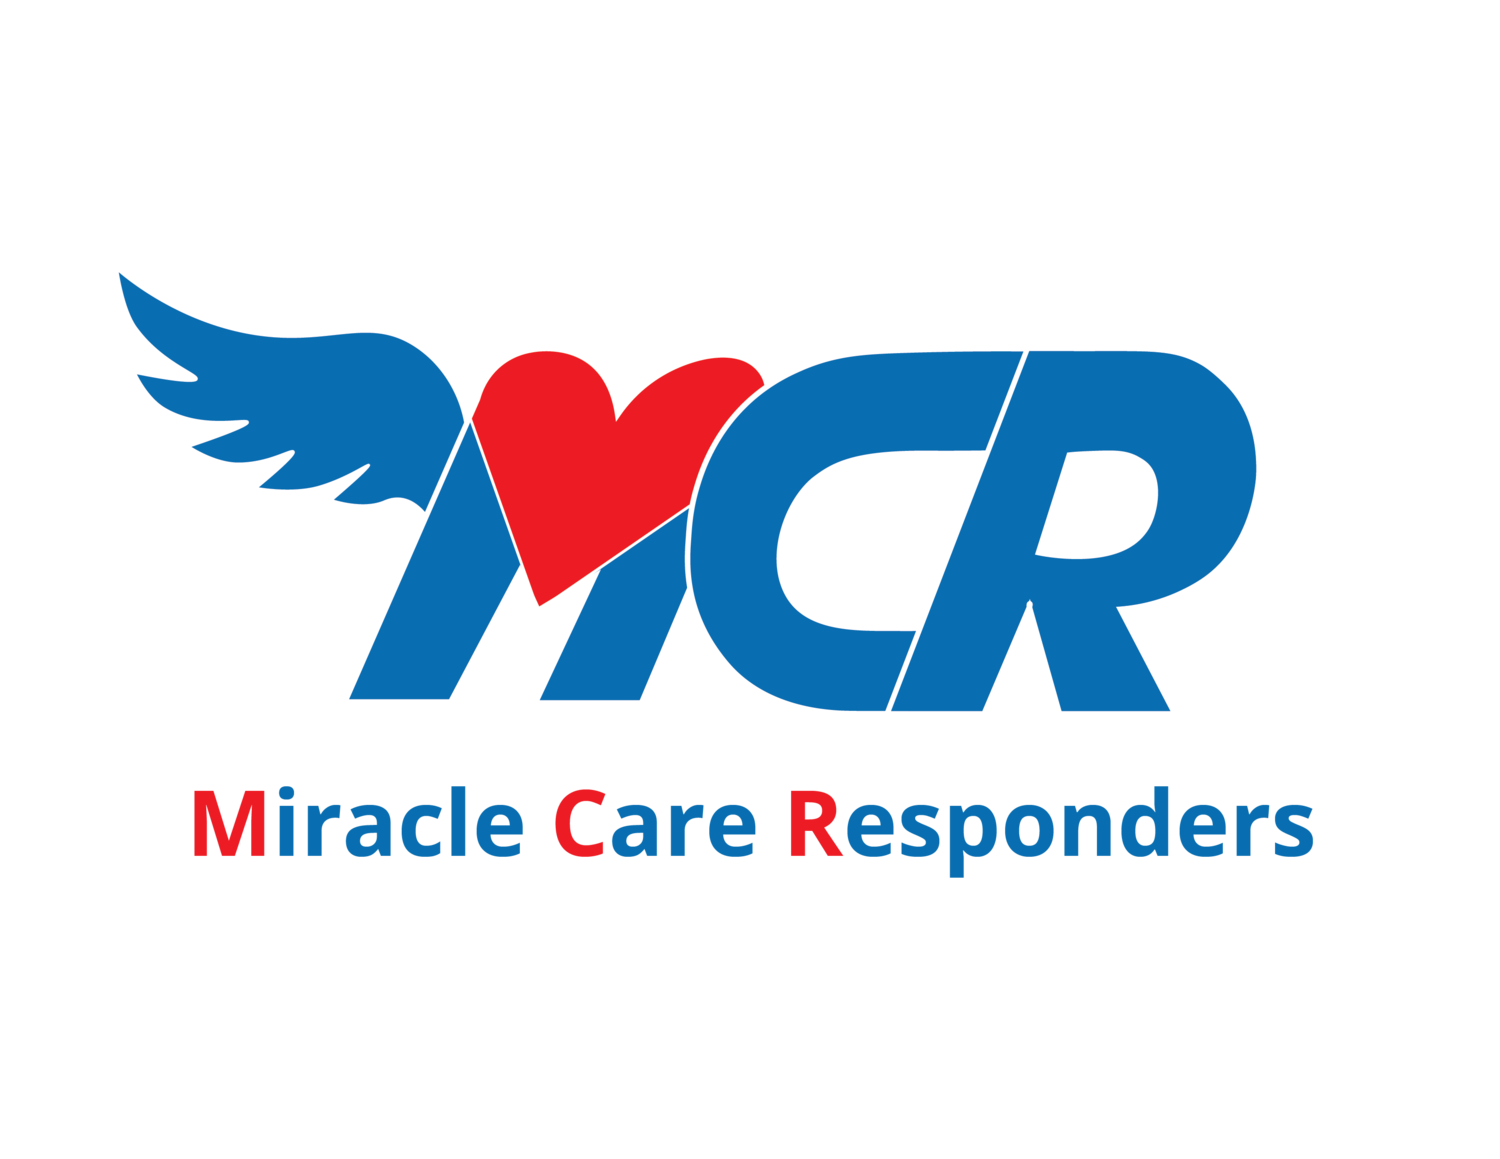 Miracle Care Responders